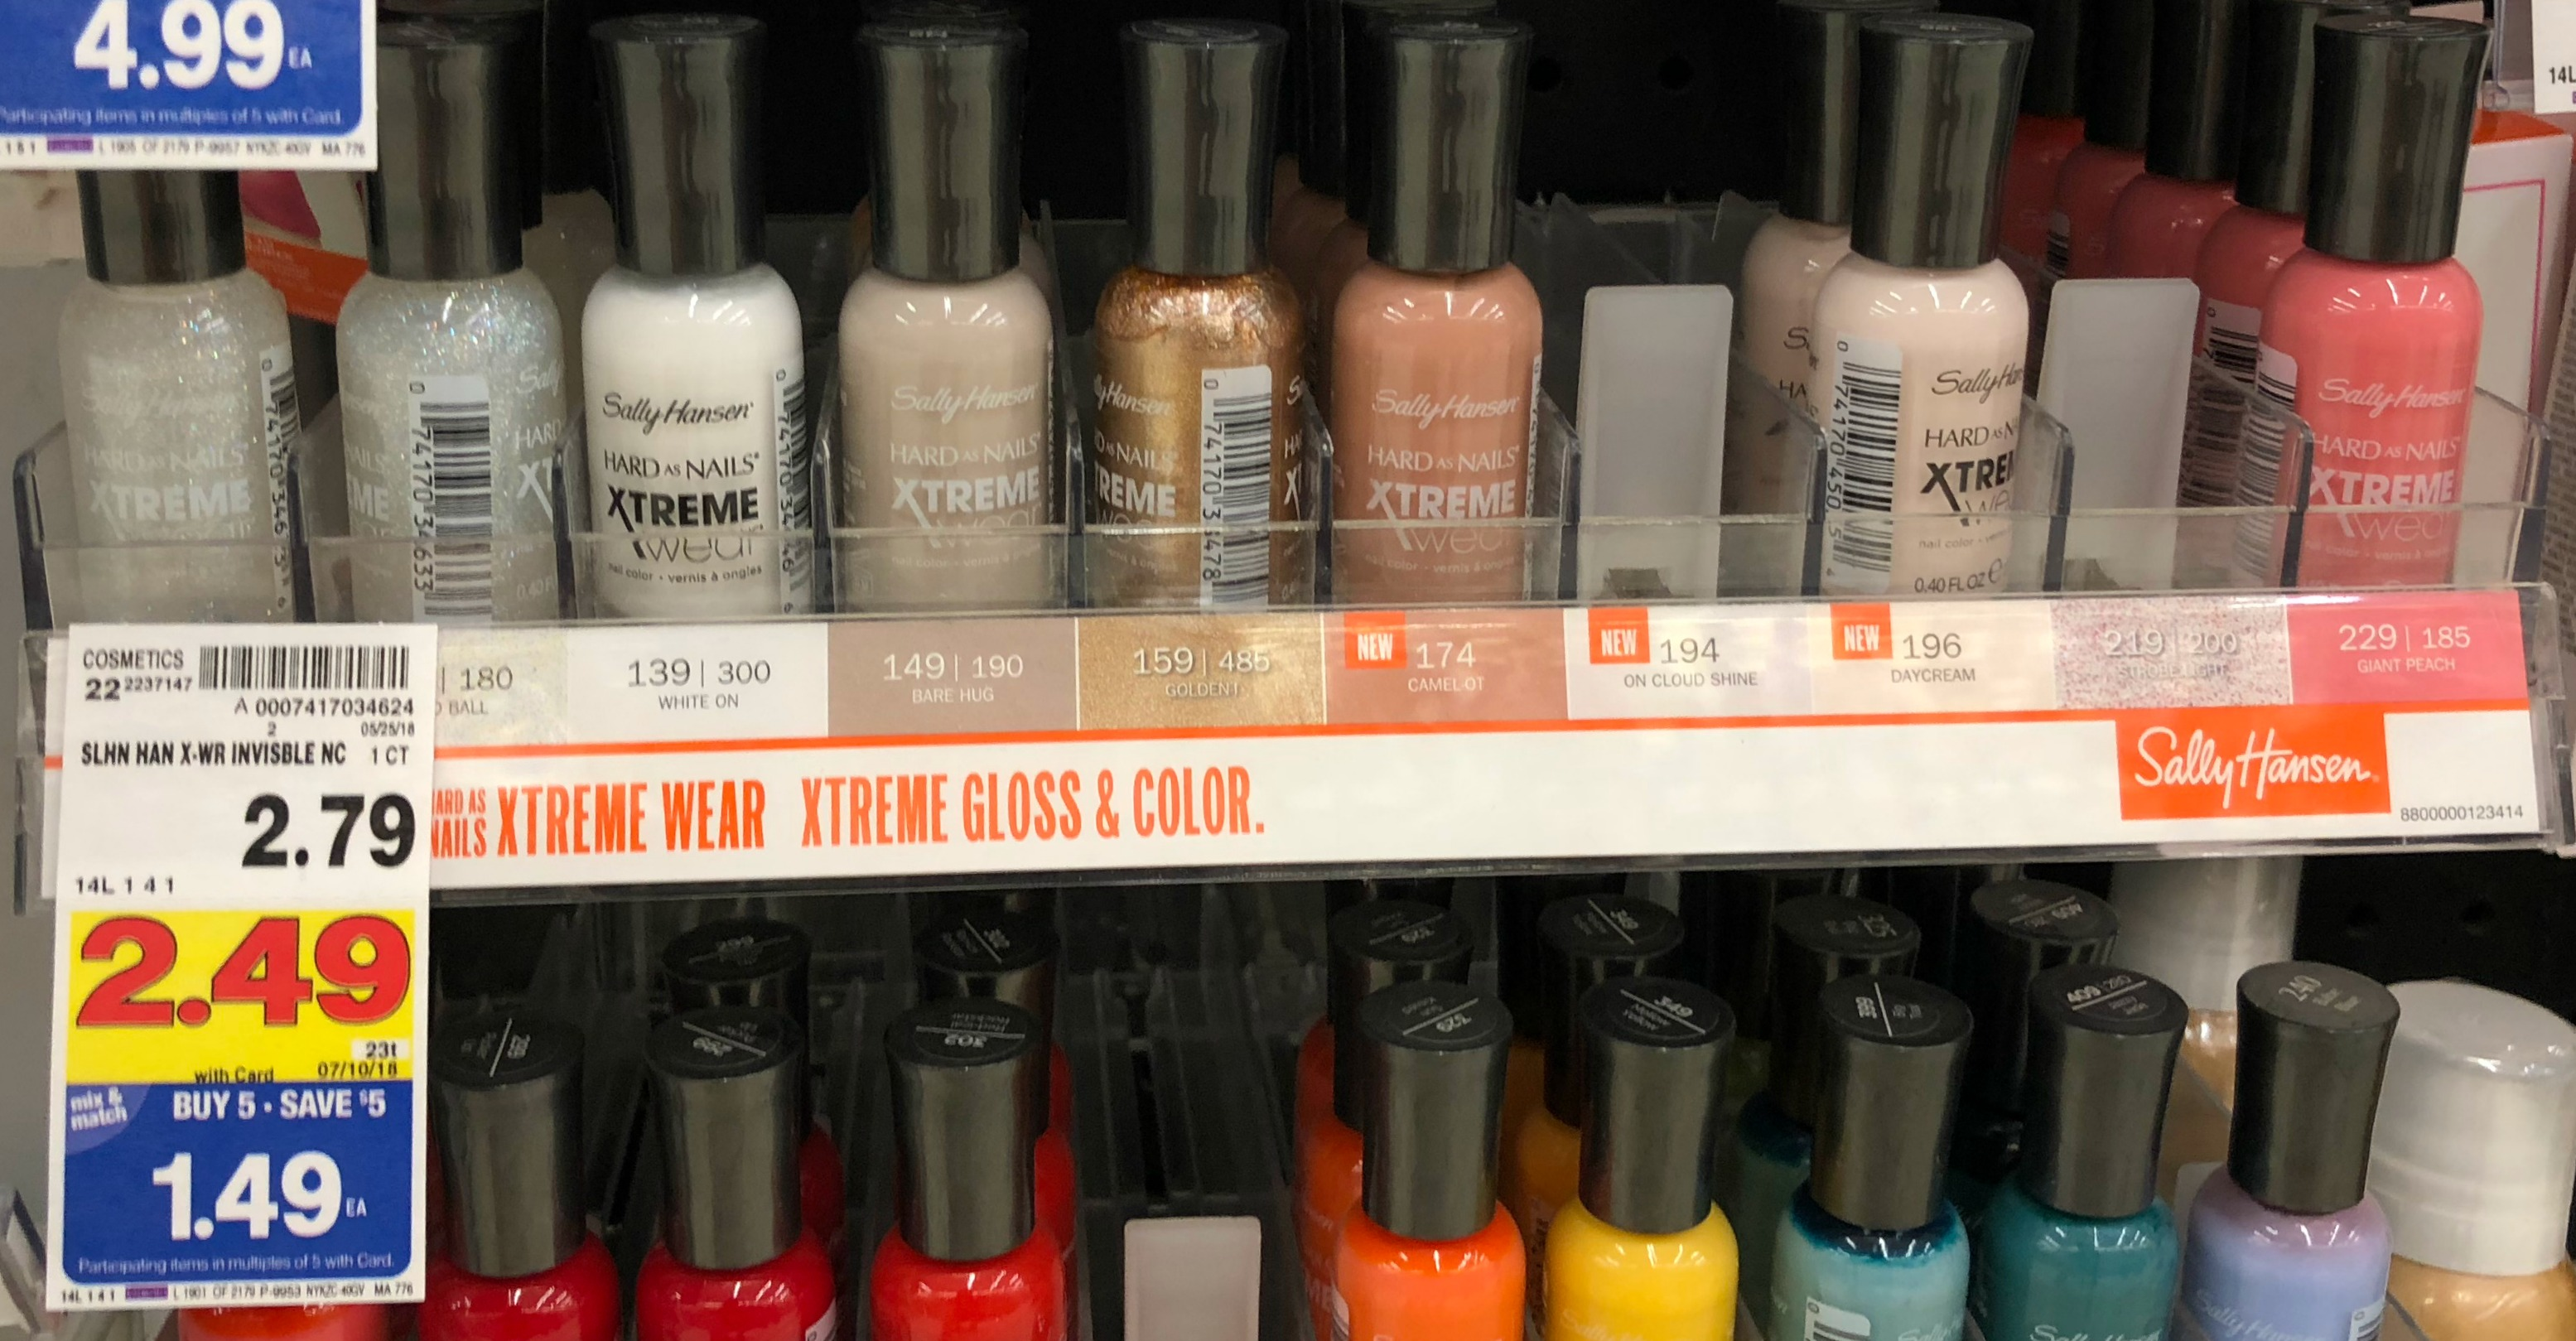 Sally Hansen Hard as Nails Xtreme Wear Nail Color ONLY $0 49